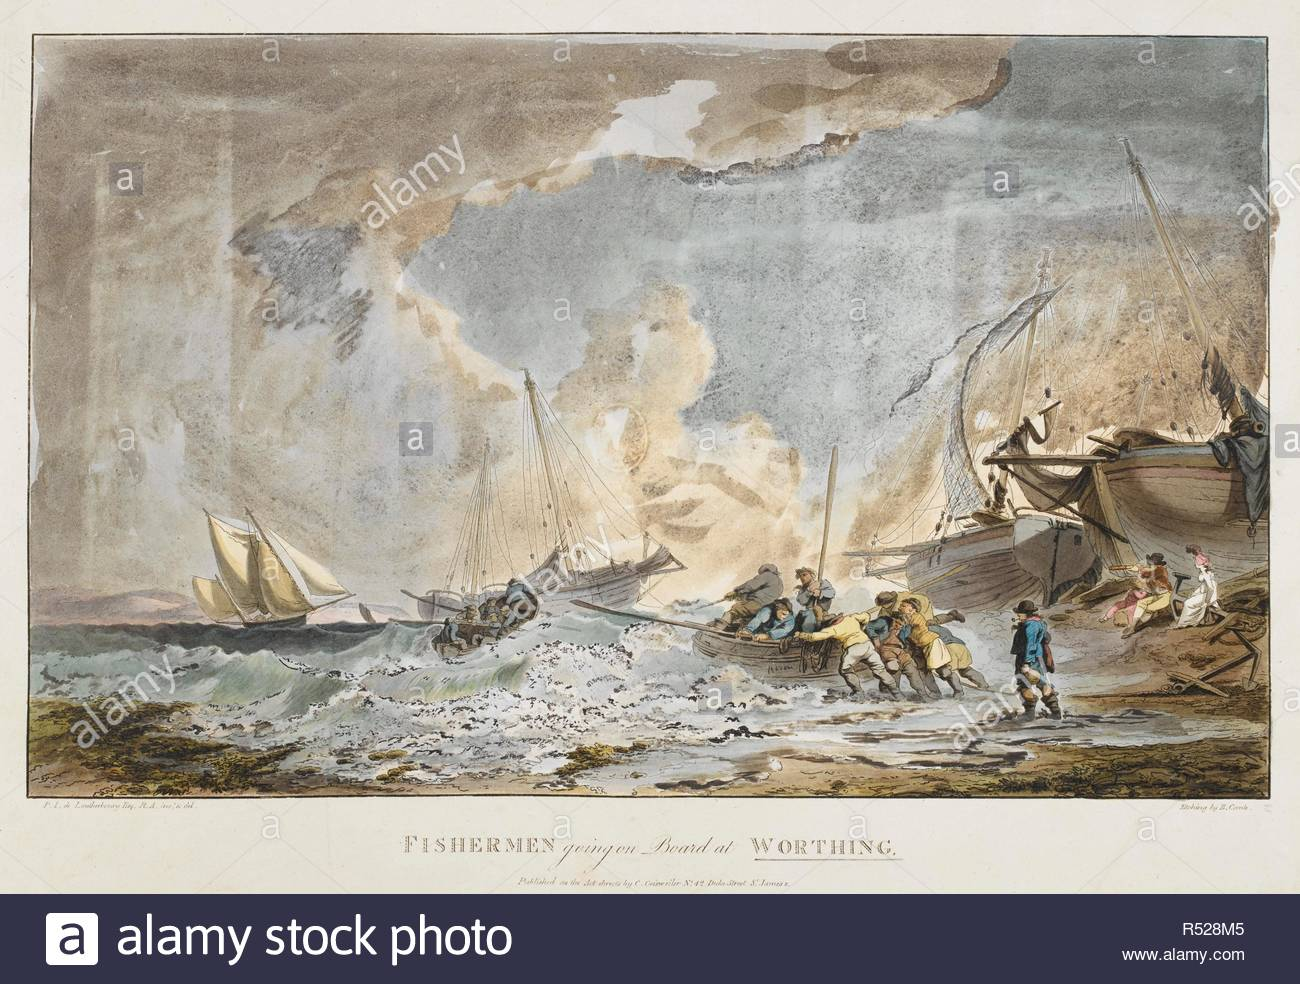 Fishermen boarding a small boat on a stormy sea; another boat of fishermen on the water; sailing boats in the distance; women and another figure with a telescope watching the scene from the beach; boats to the right-hand side. FISHERMEN going on Board at WORTHING. [London] : Published as the Act directs by C. Geisweiler No 42 Duke Street St James's, [around 1800]. Etching with hand-colouring. Source: Maps K.Top.42.72. Language: English. Author: Philippe-Jacques de Loutherbourg. Comte, B. - Stock Image